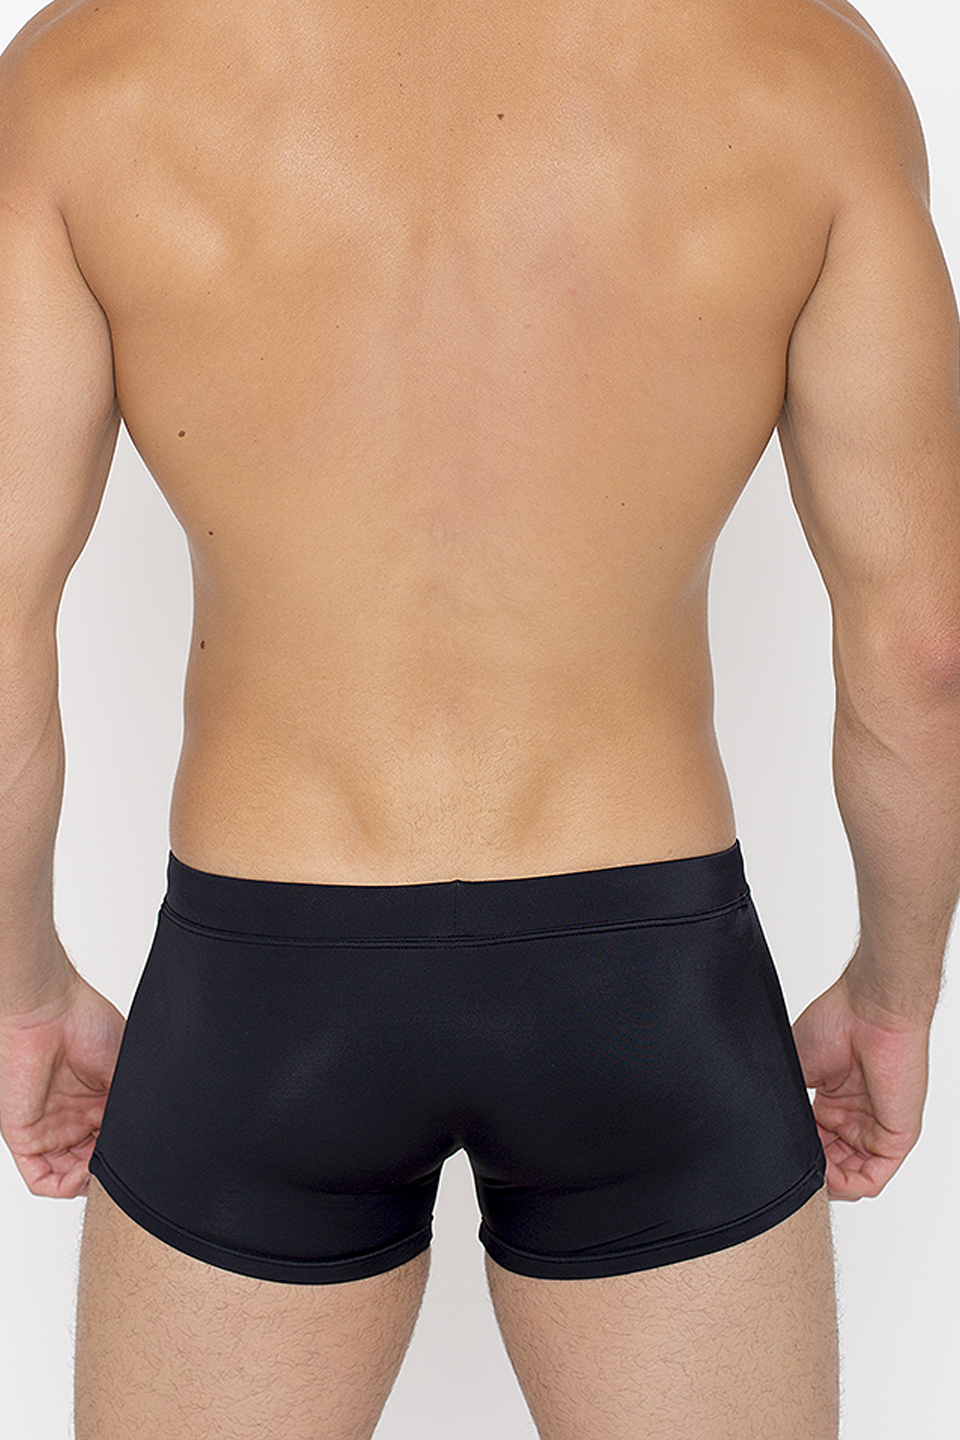 Brighton Swim Trunk - Black